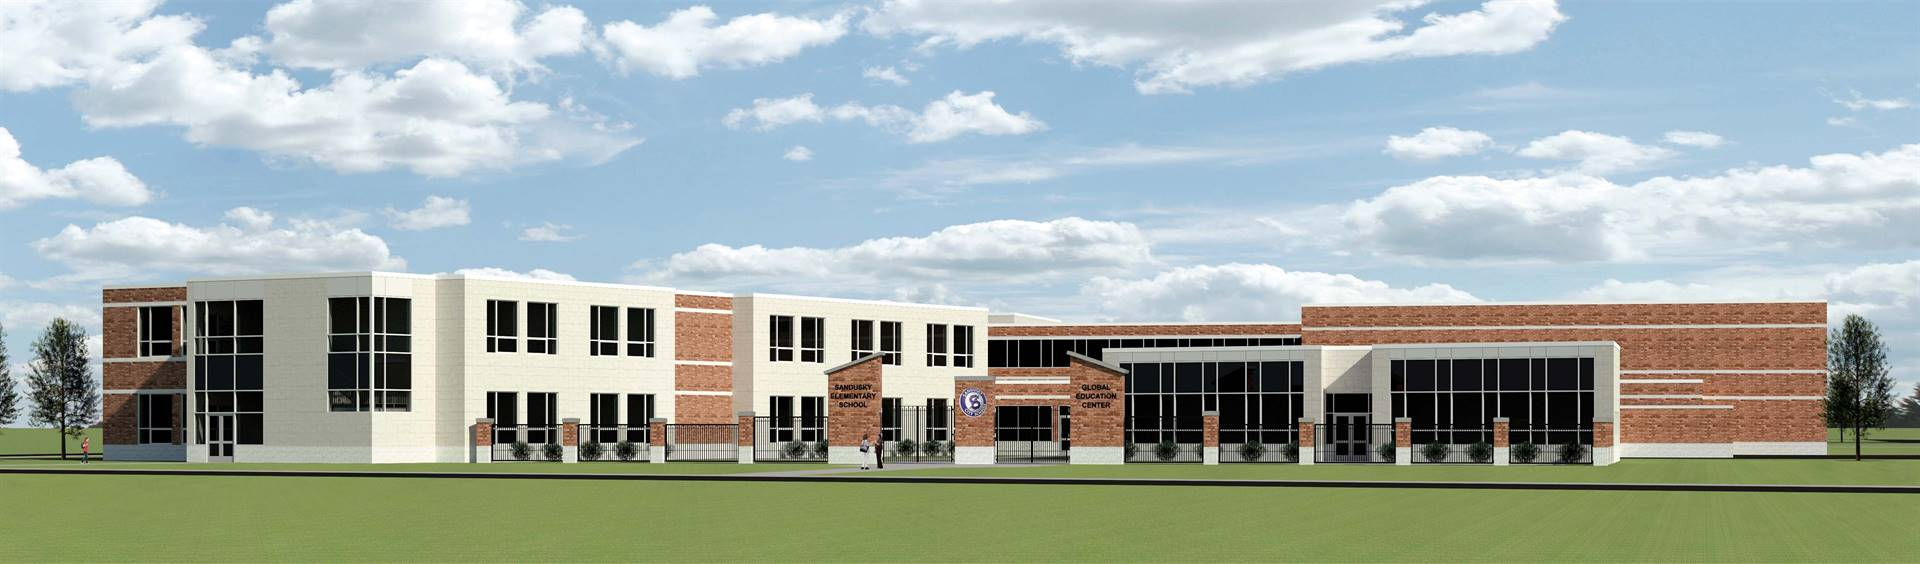 Sandusky Intermediate School Rendering